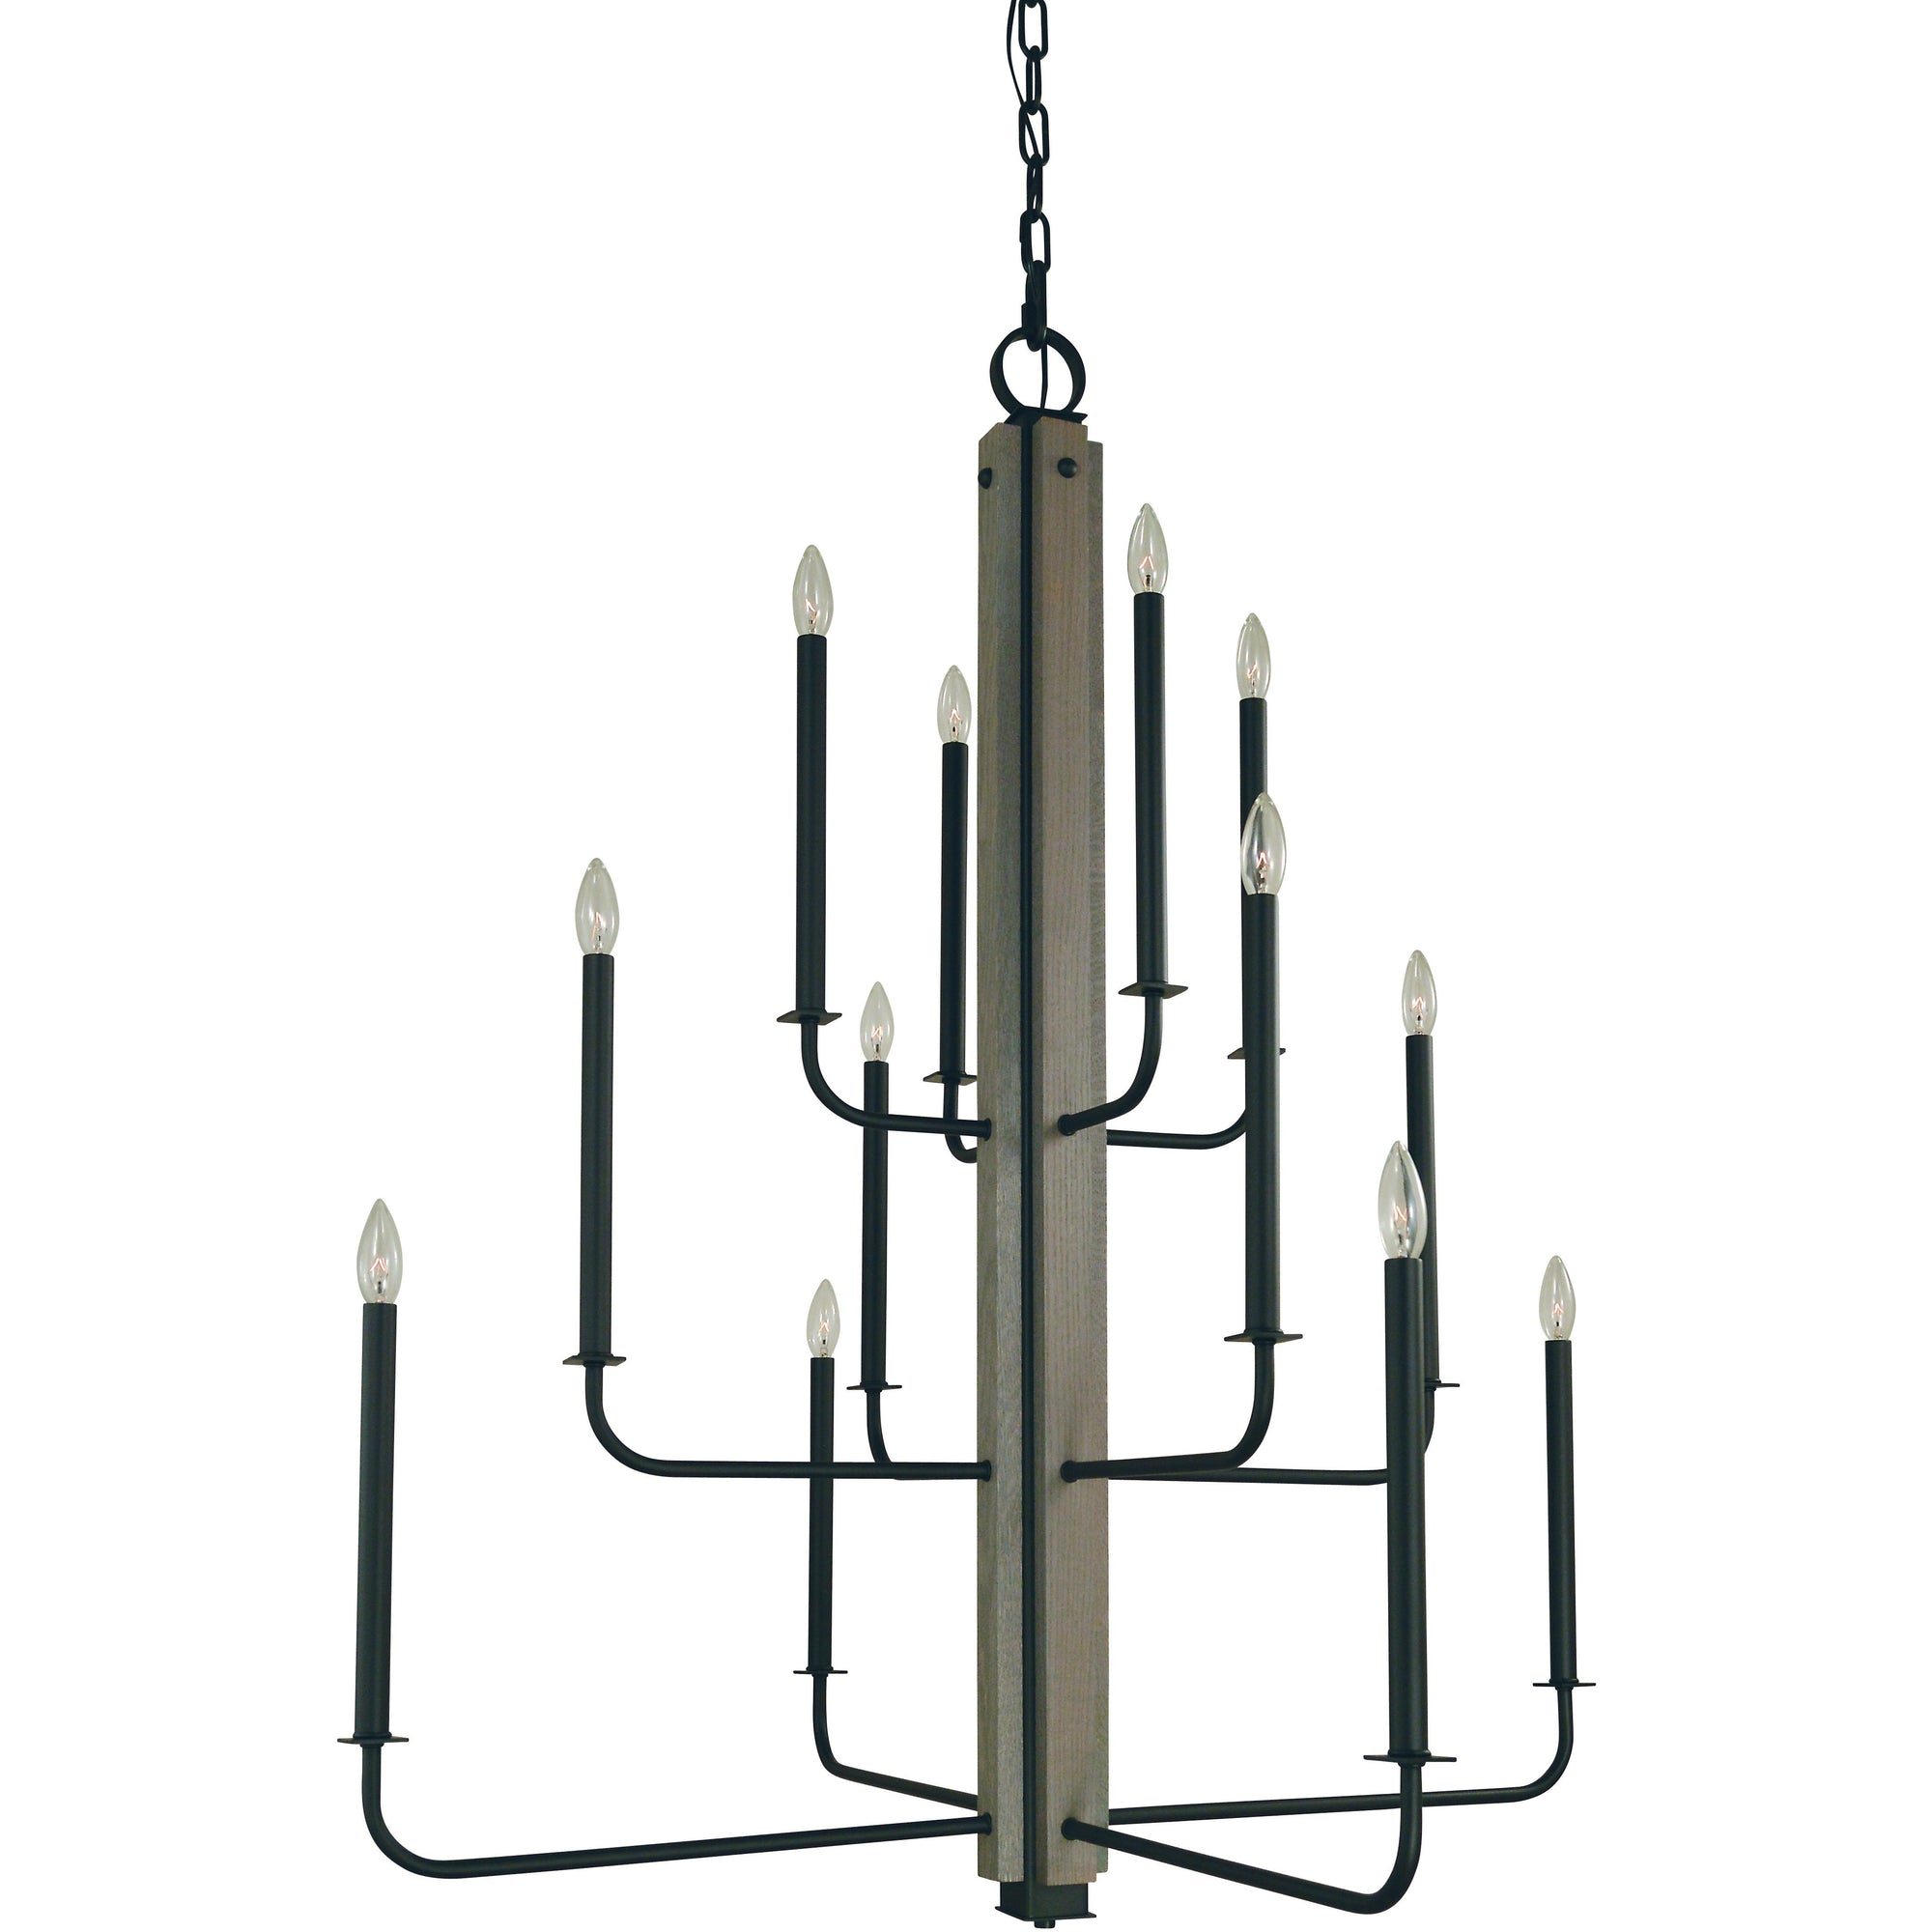 Framburg Chandeliers Matte Black 12-Light Matte Black With Grey Oak Accents Loft Foyer Chandelier by Framburg 5412